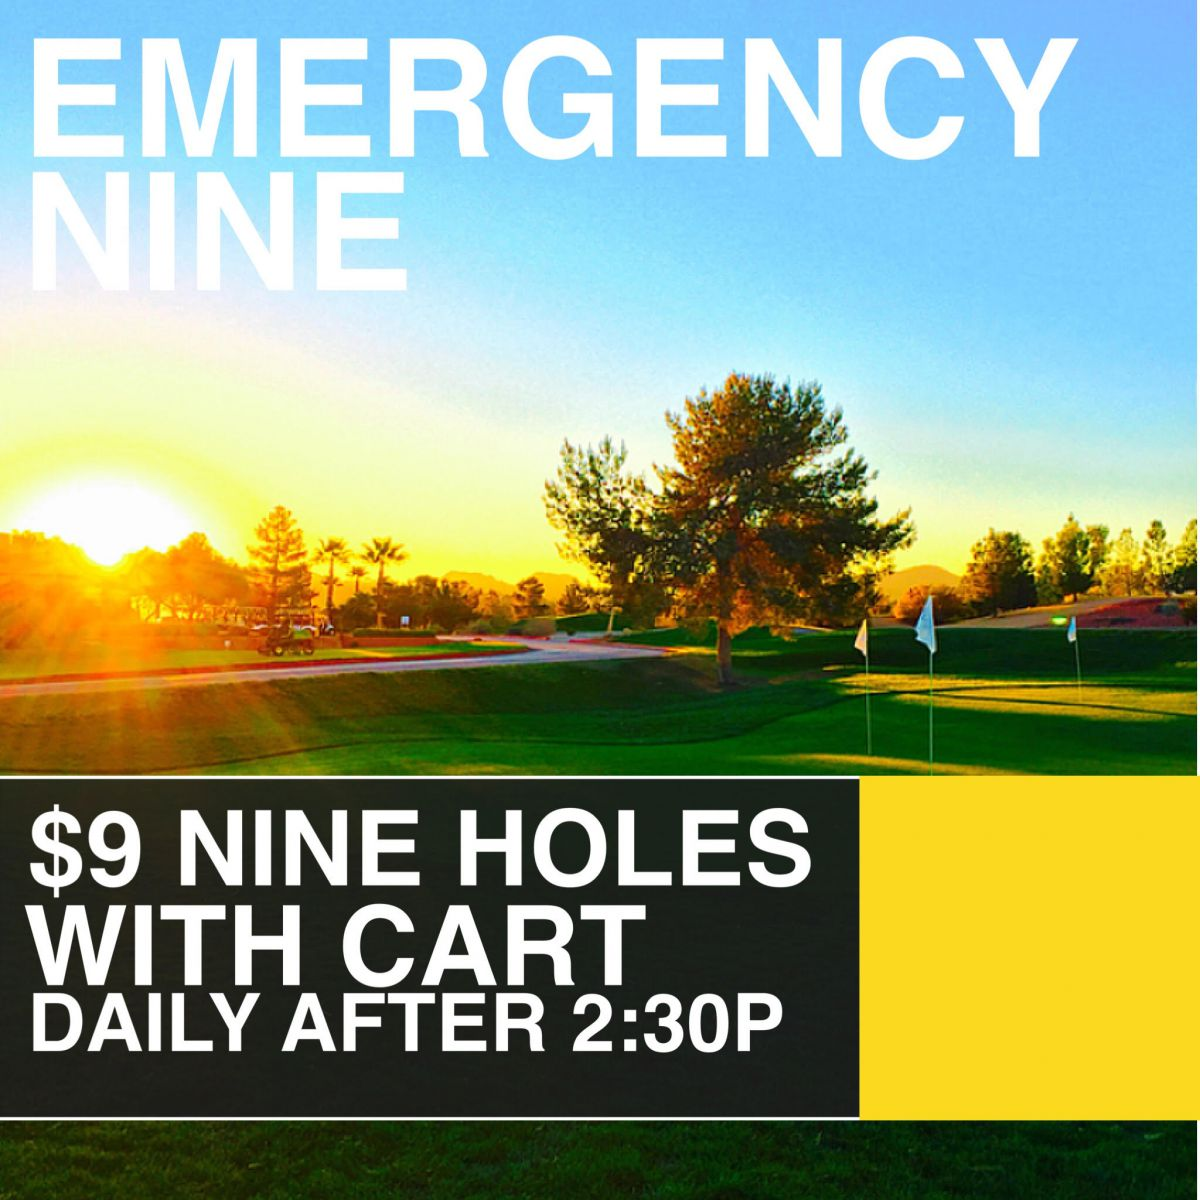 9 hole golf, only $9, emergency nine, vegas, las vegas, golf, las vegas golf deals, best of vegas, henderson golf, henderson golf deals, lake las vegas, $9